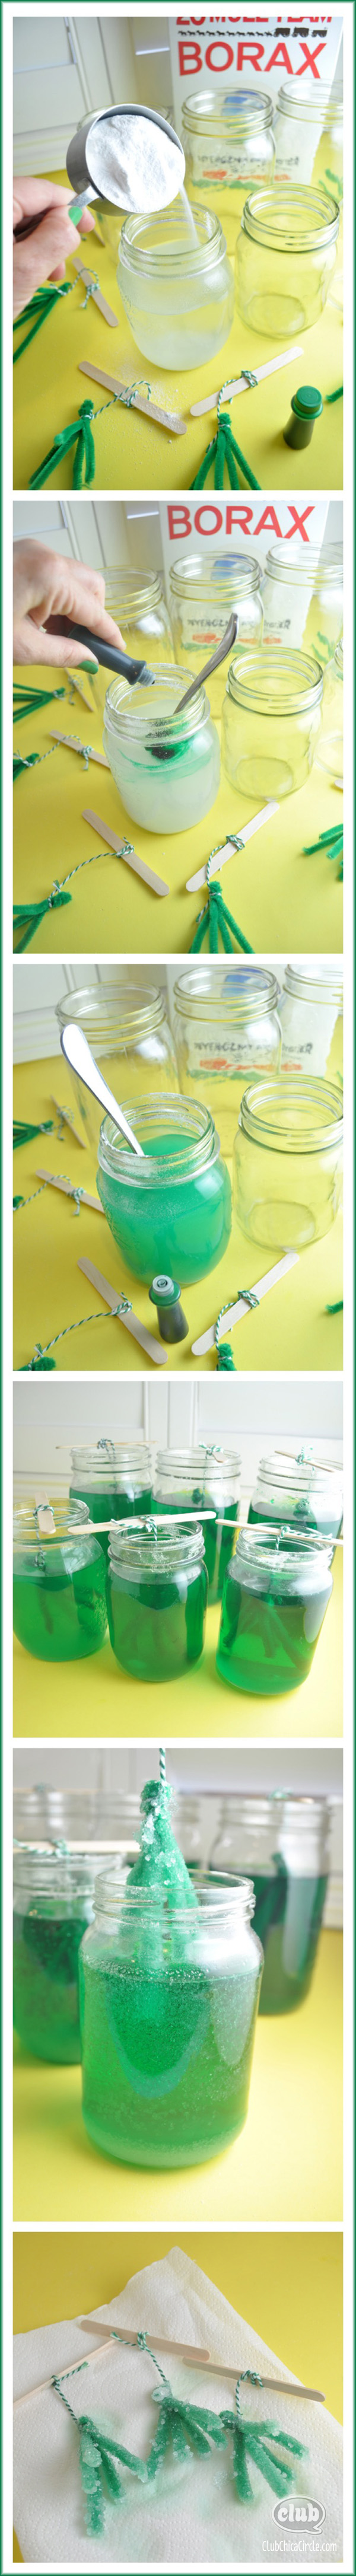 Emerald borax crystals DIY